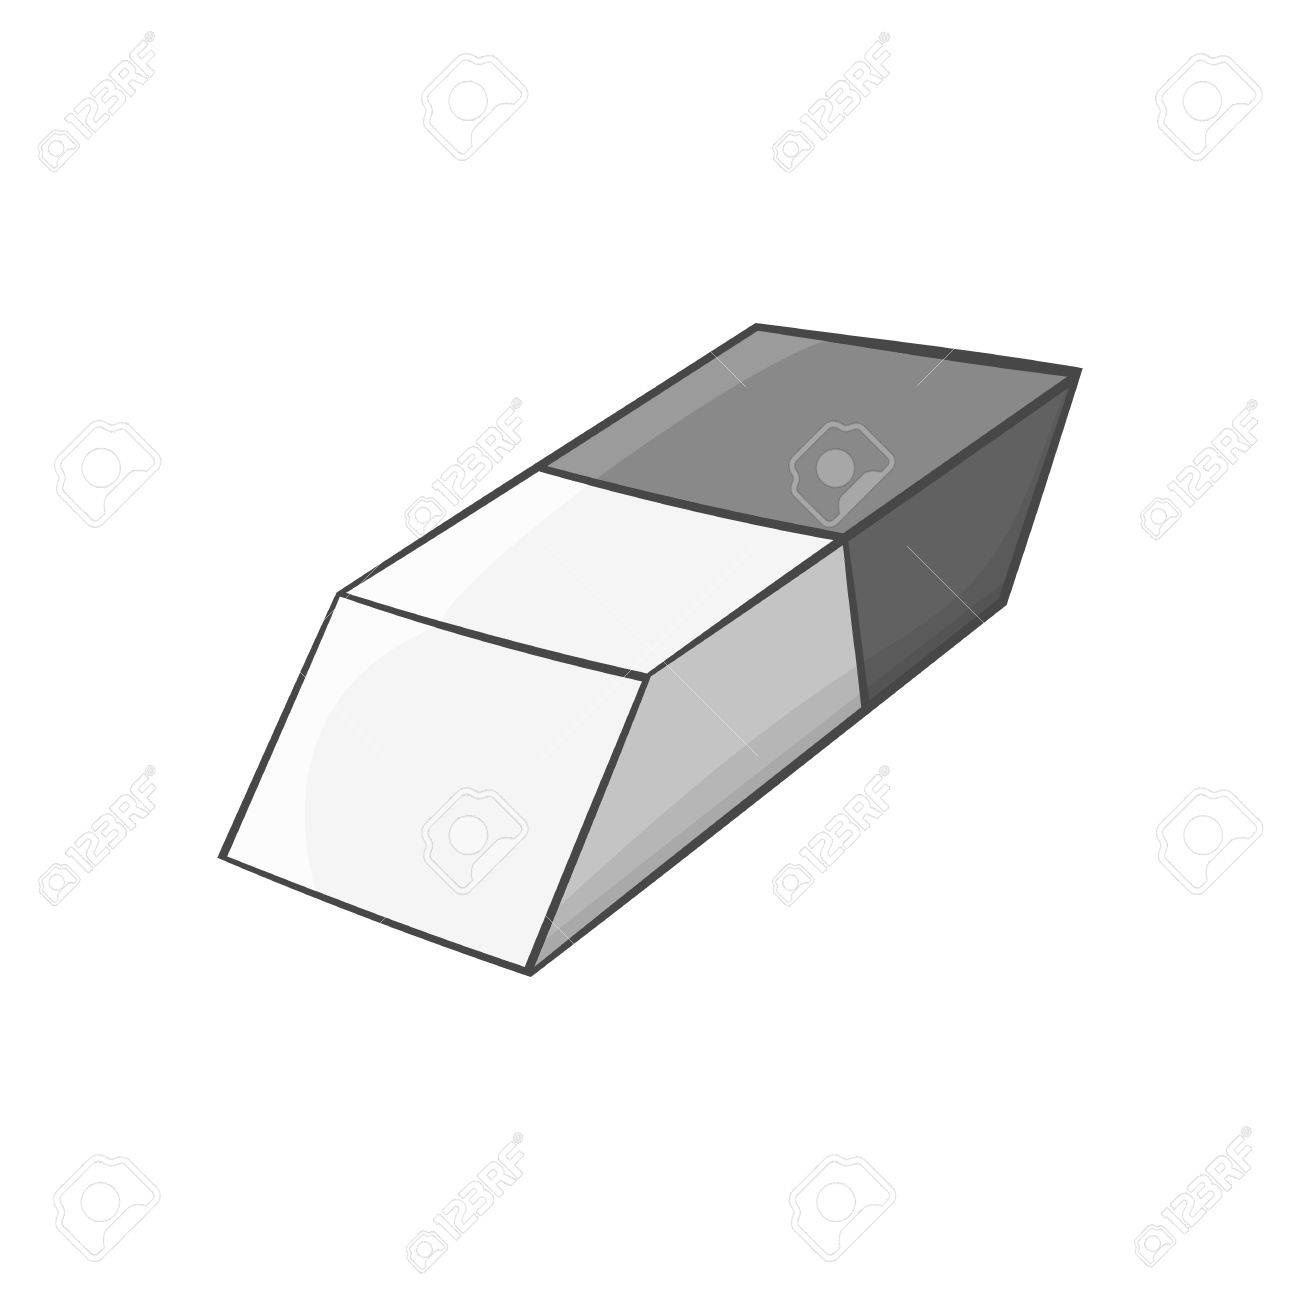 eraser icon in black monochrome style isolated on white background